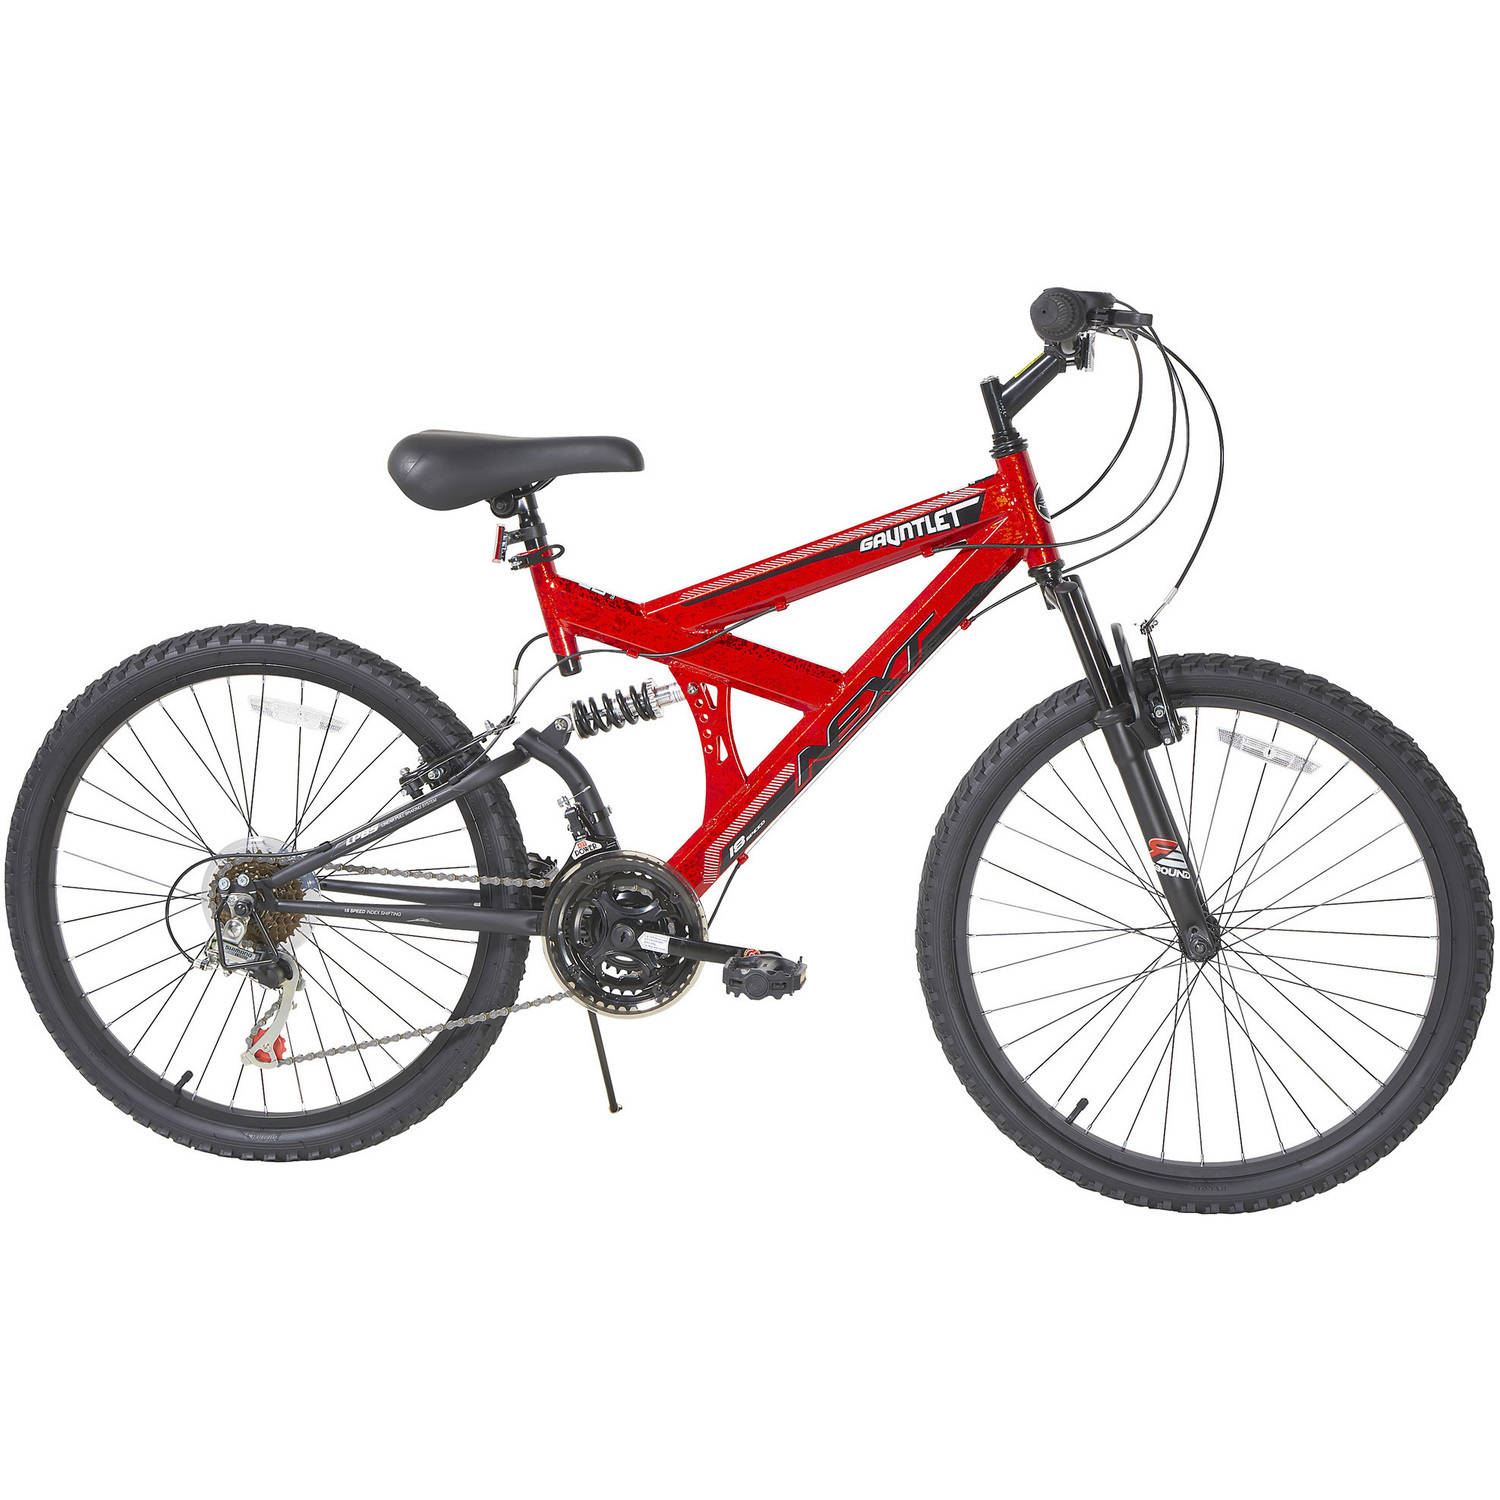 "24"" NEXT Boys' Gauntlet Bike"